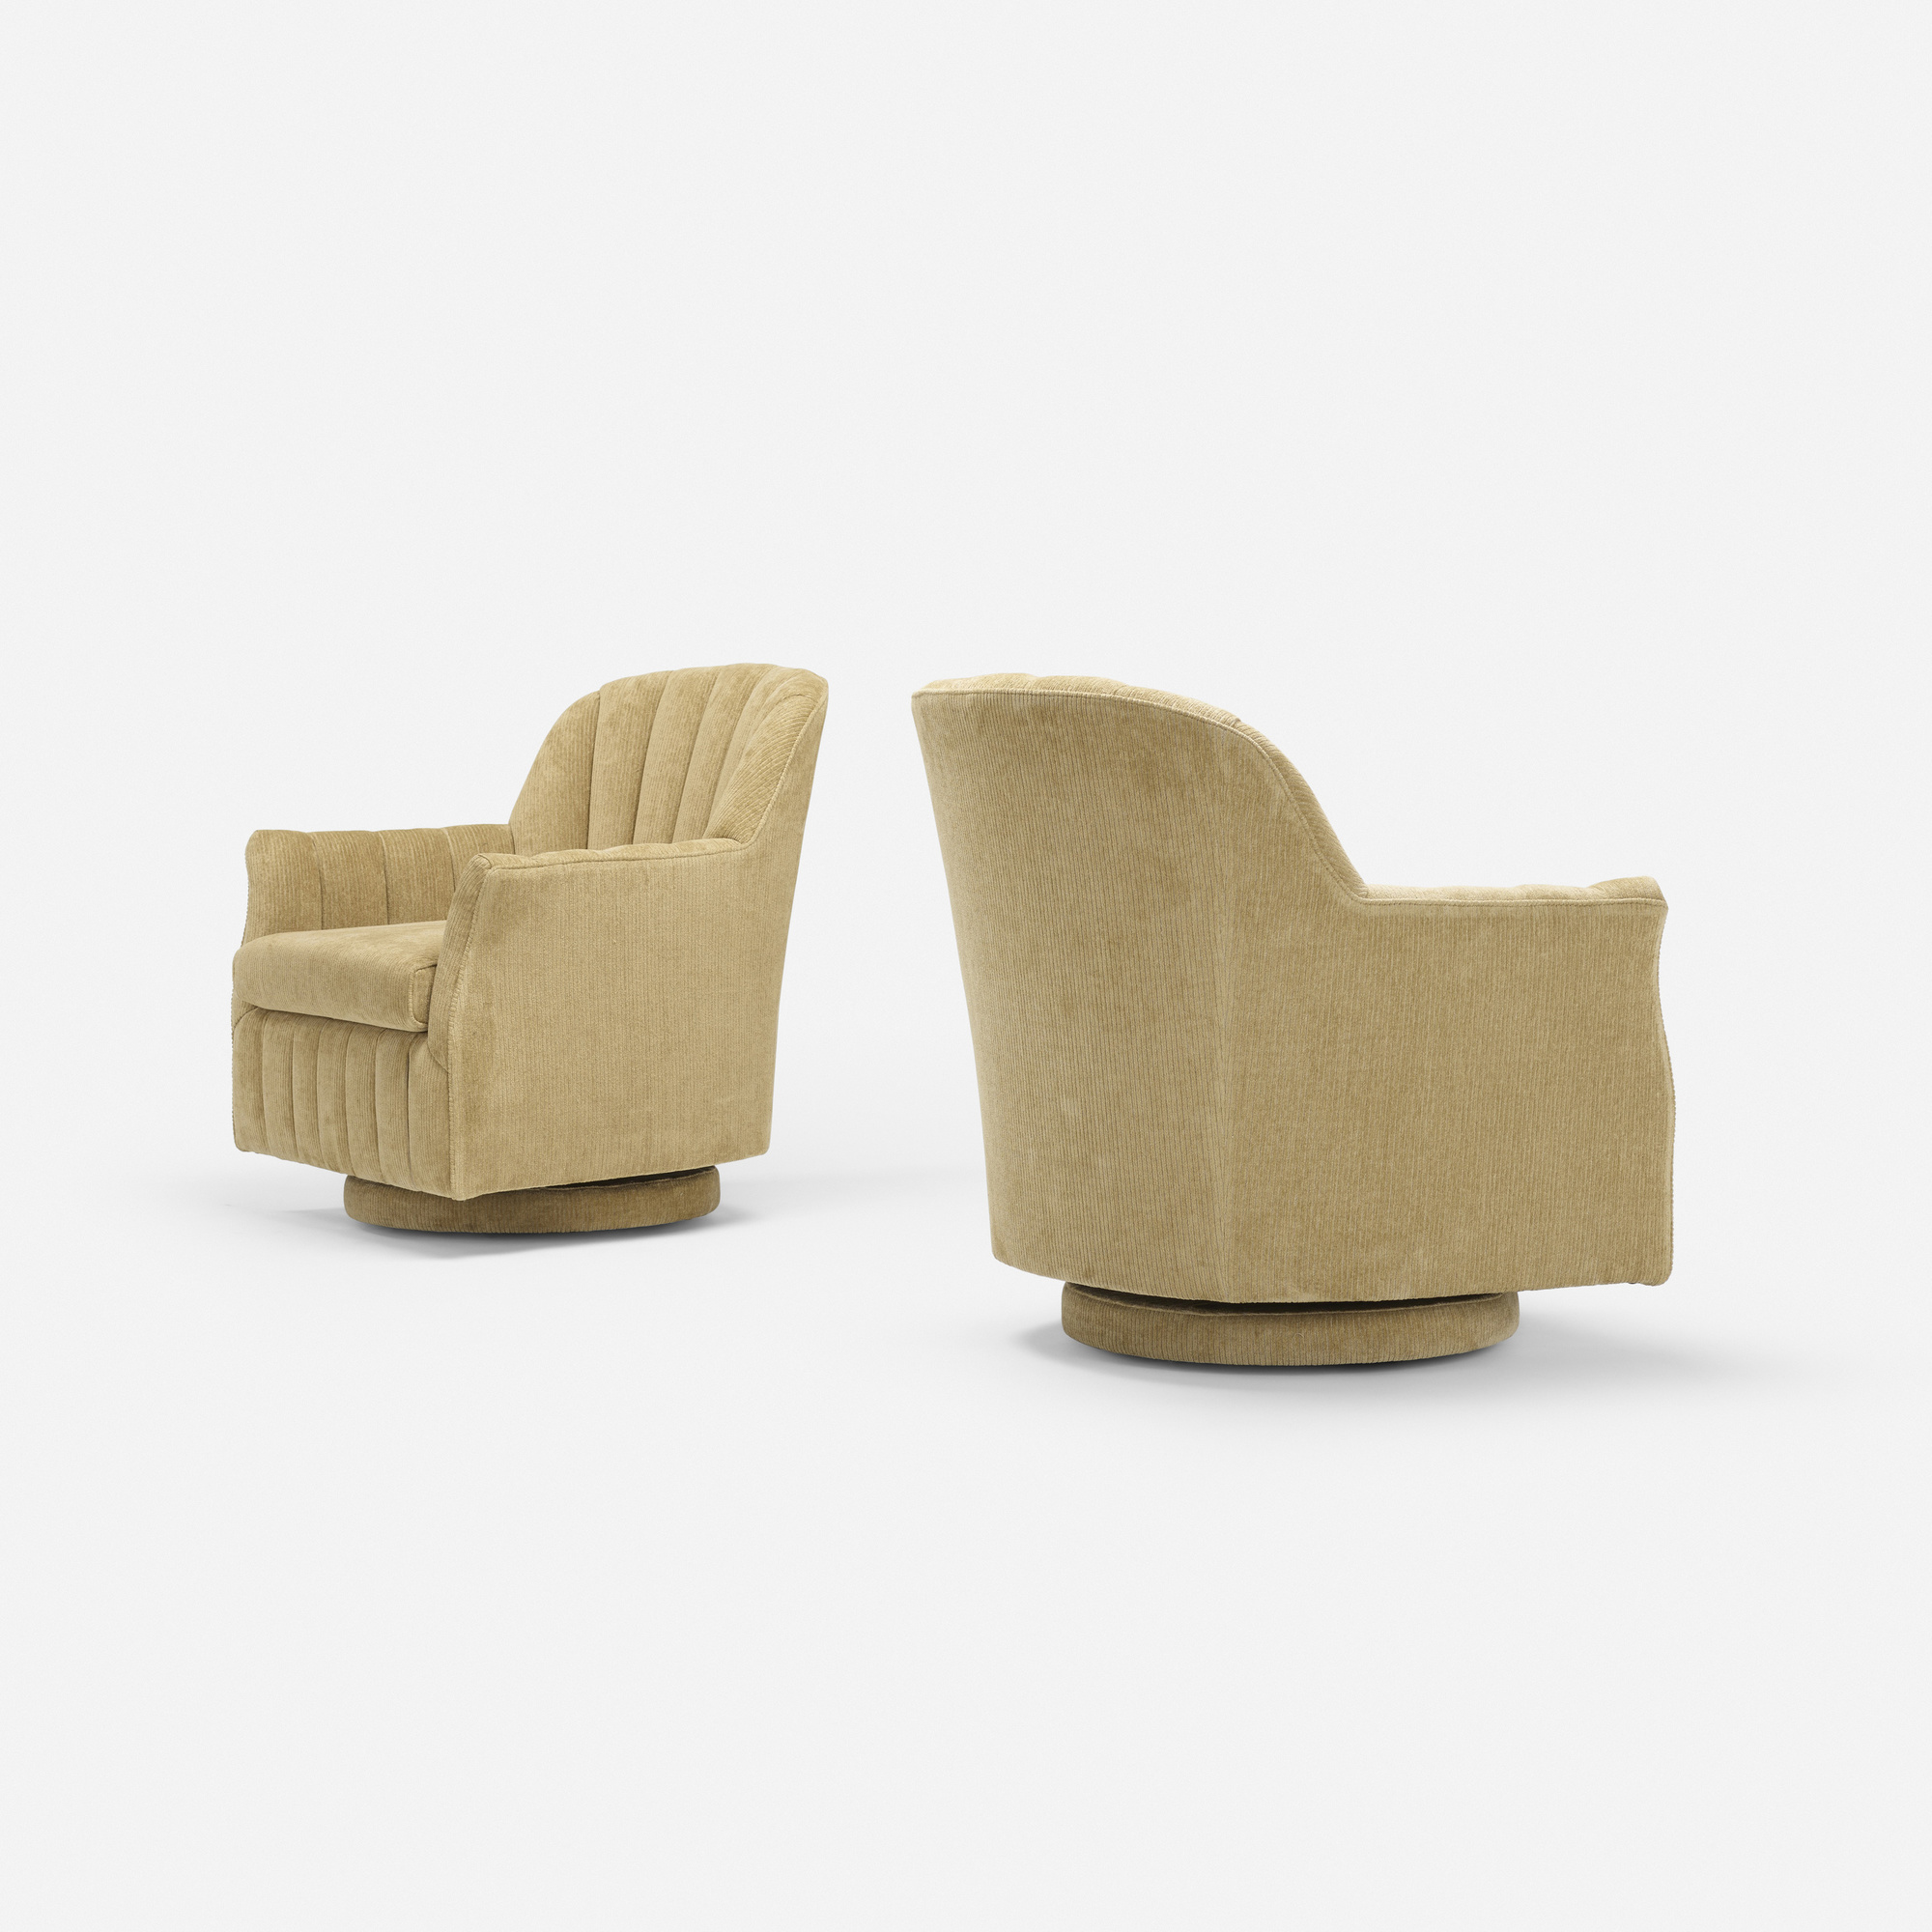 155: Milo Baughman, attribution / lounge chairs, pair (2 of 3)